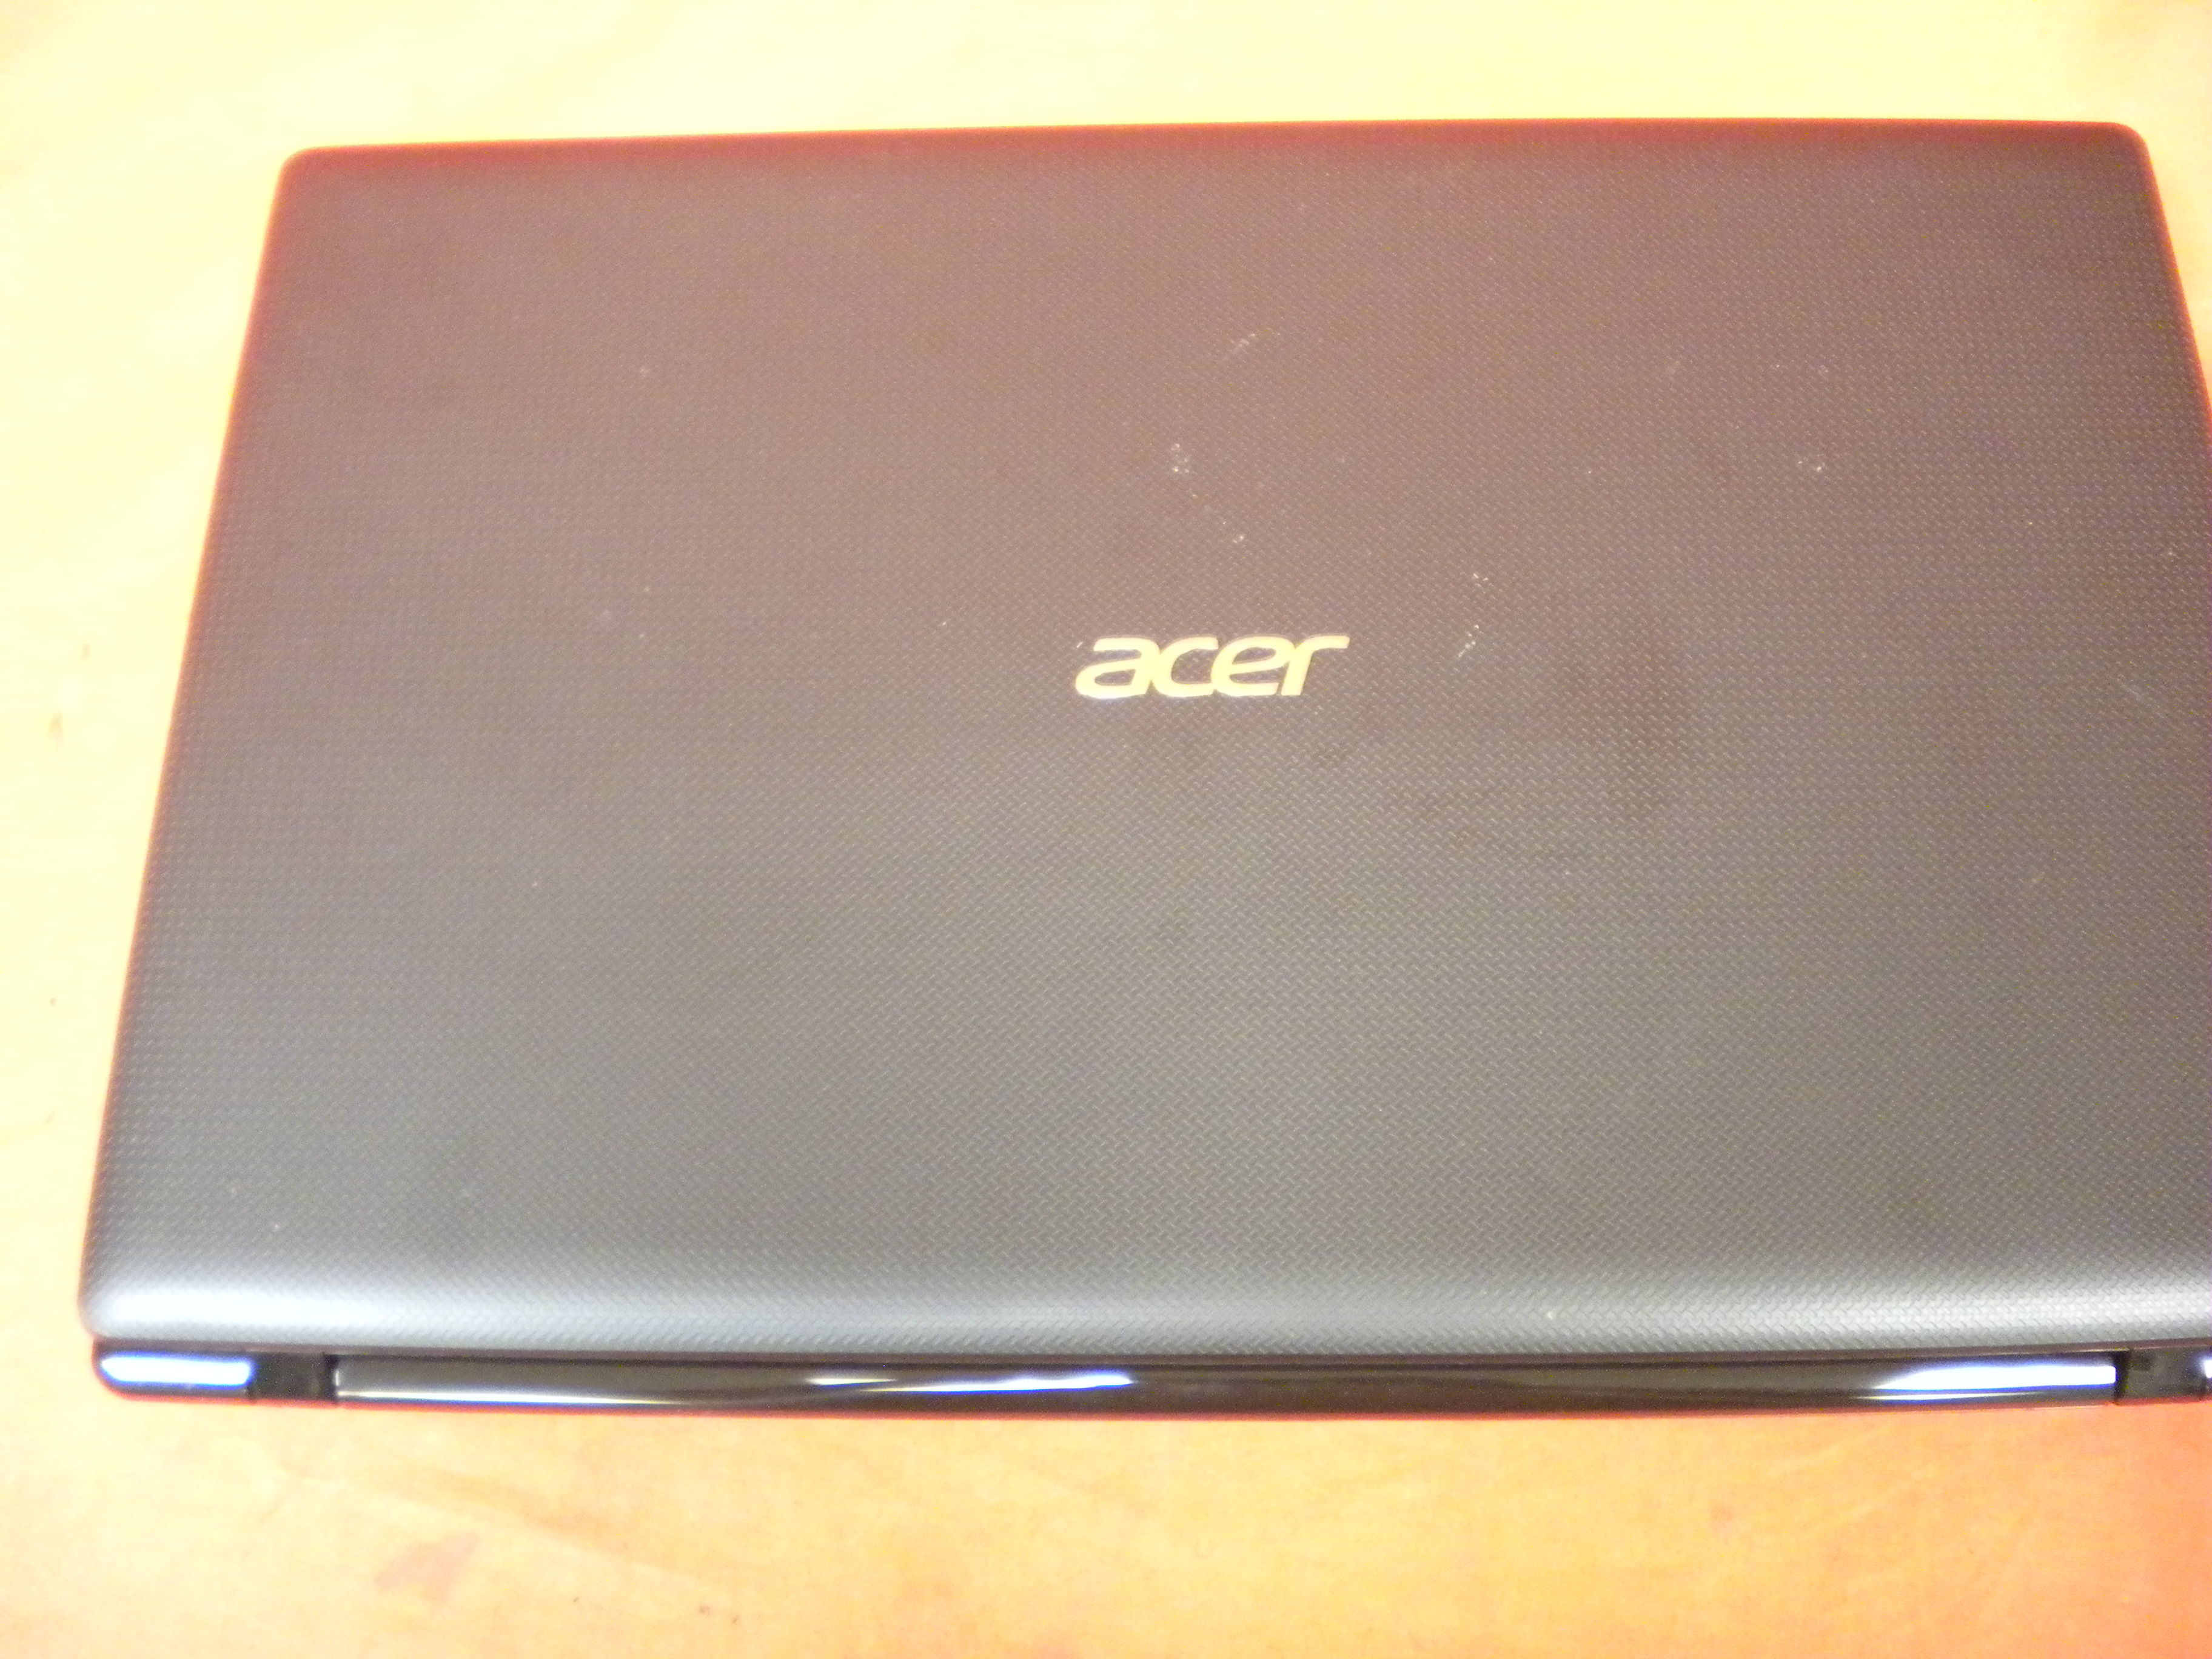 Image 3 of Acer Aspire 7560-7183 Laptop 17.3